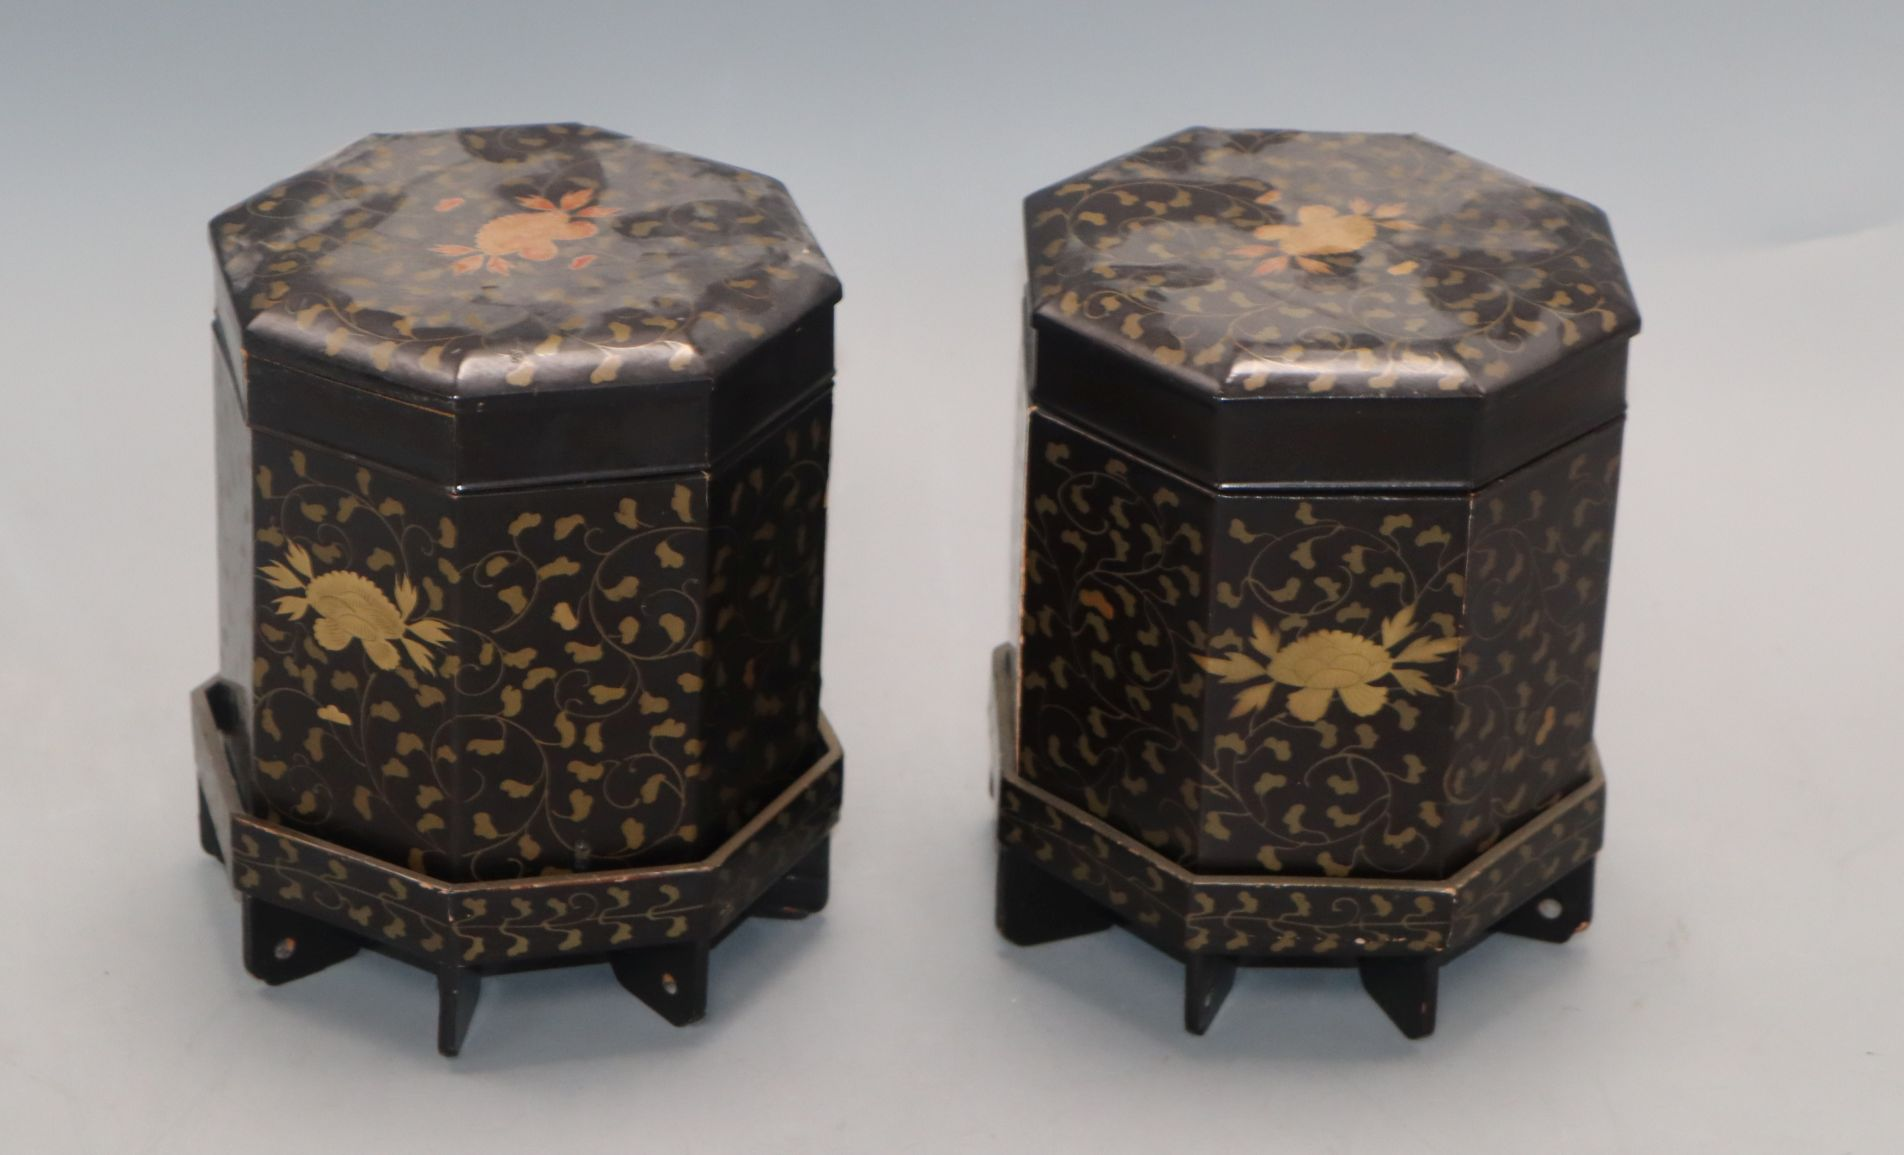 Lot 95 - A pair of Japanese lacquered boxes and covers